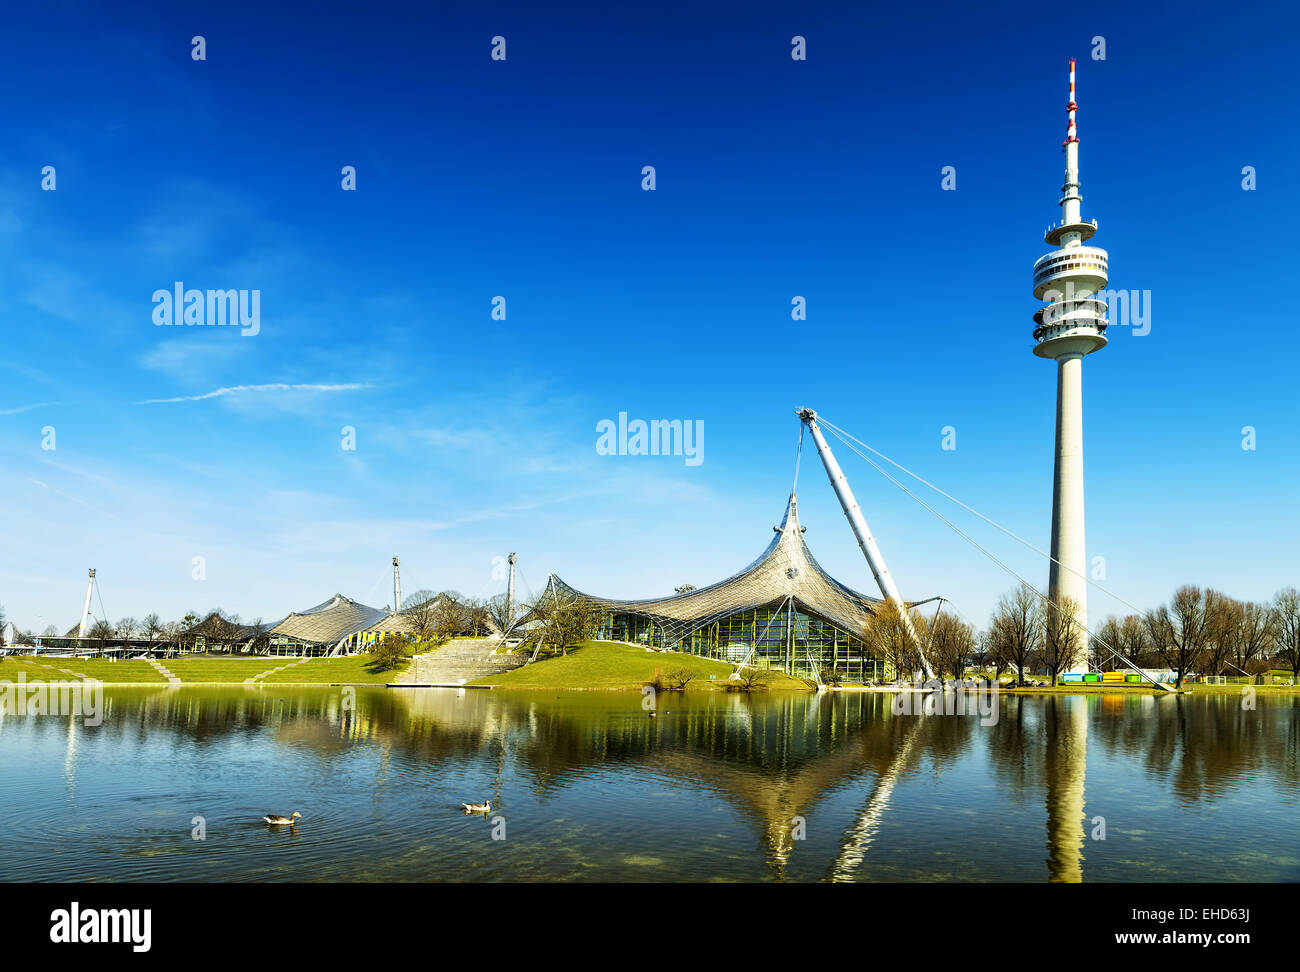 L'Olympiapark, stade olympique de Munich et de l'installation, l'Allemagne, de l'Europe Photo Stock